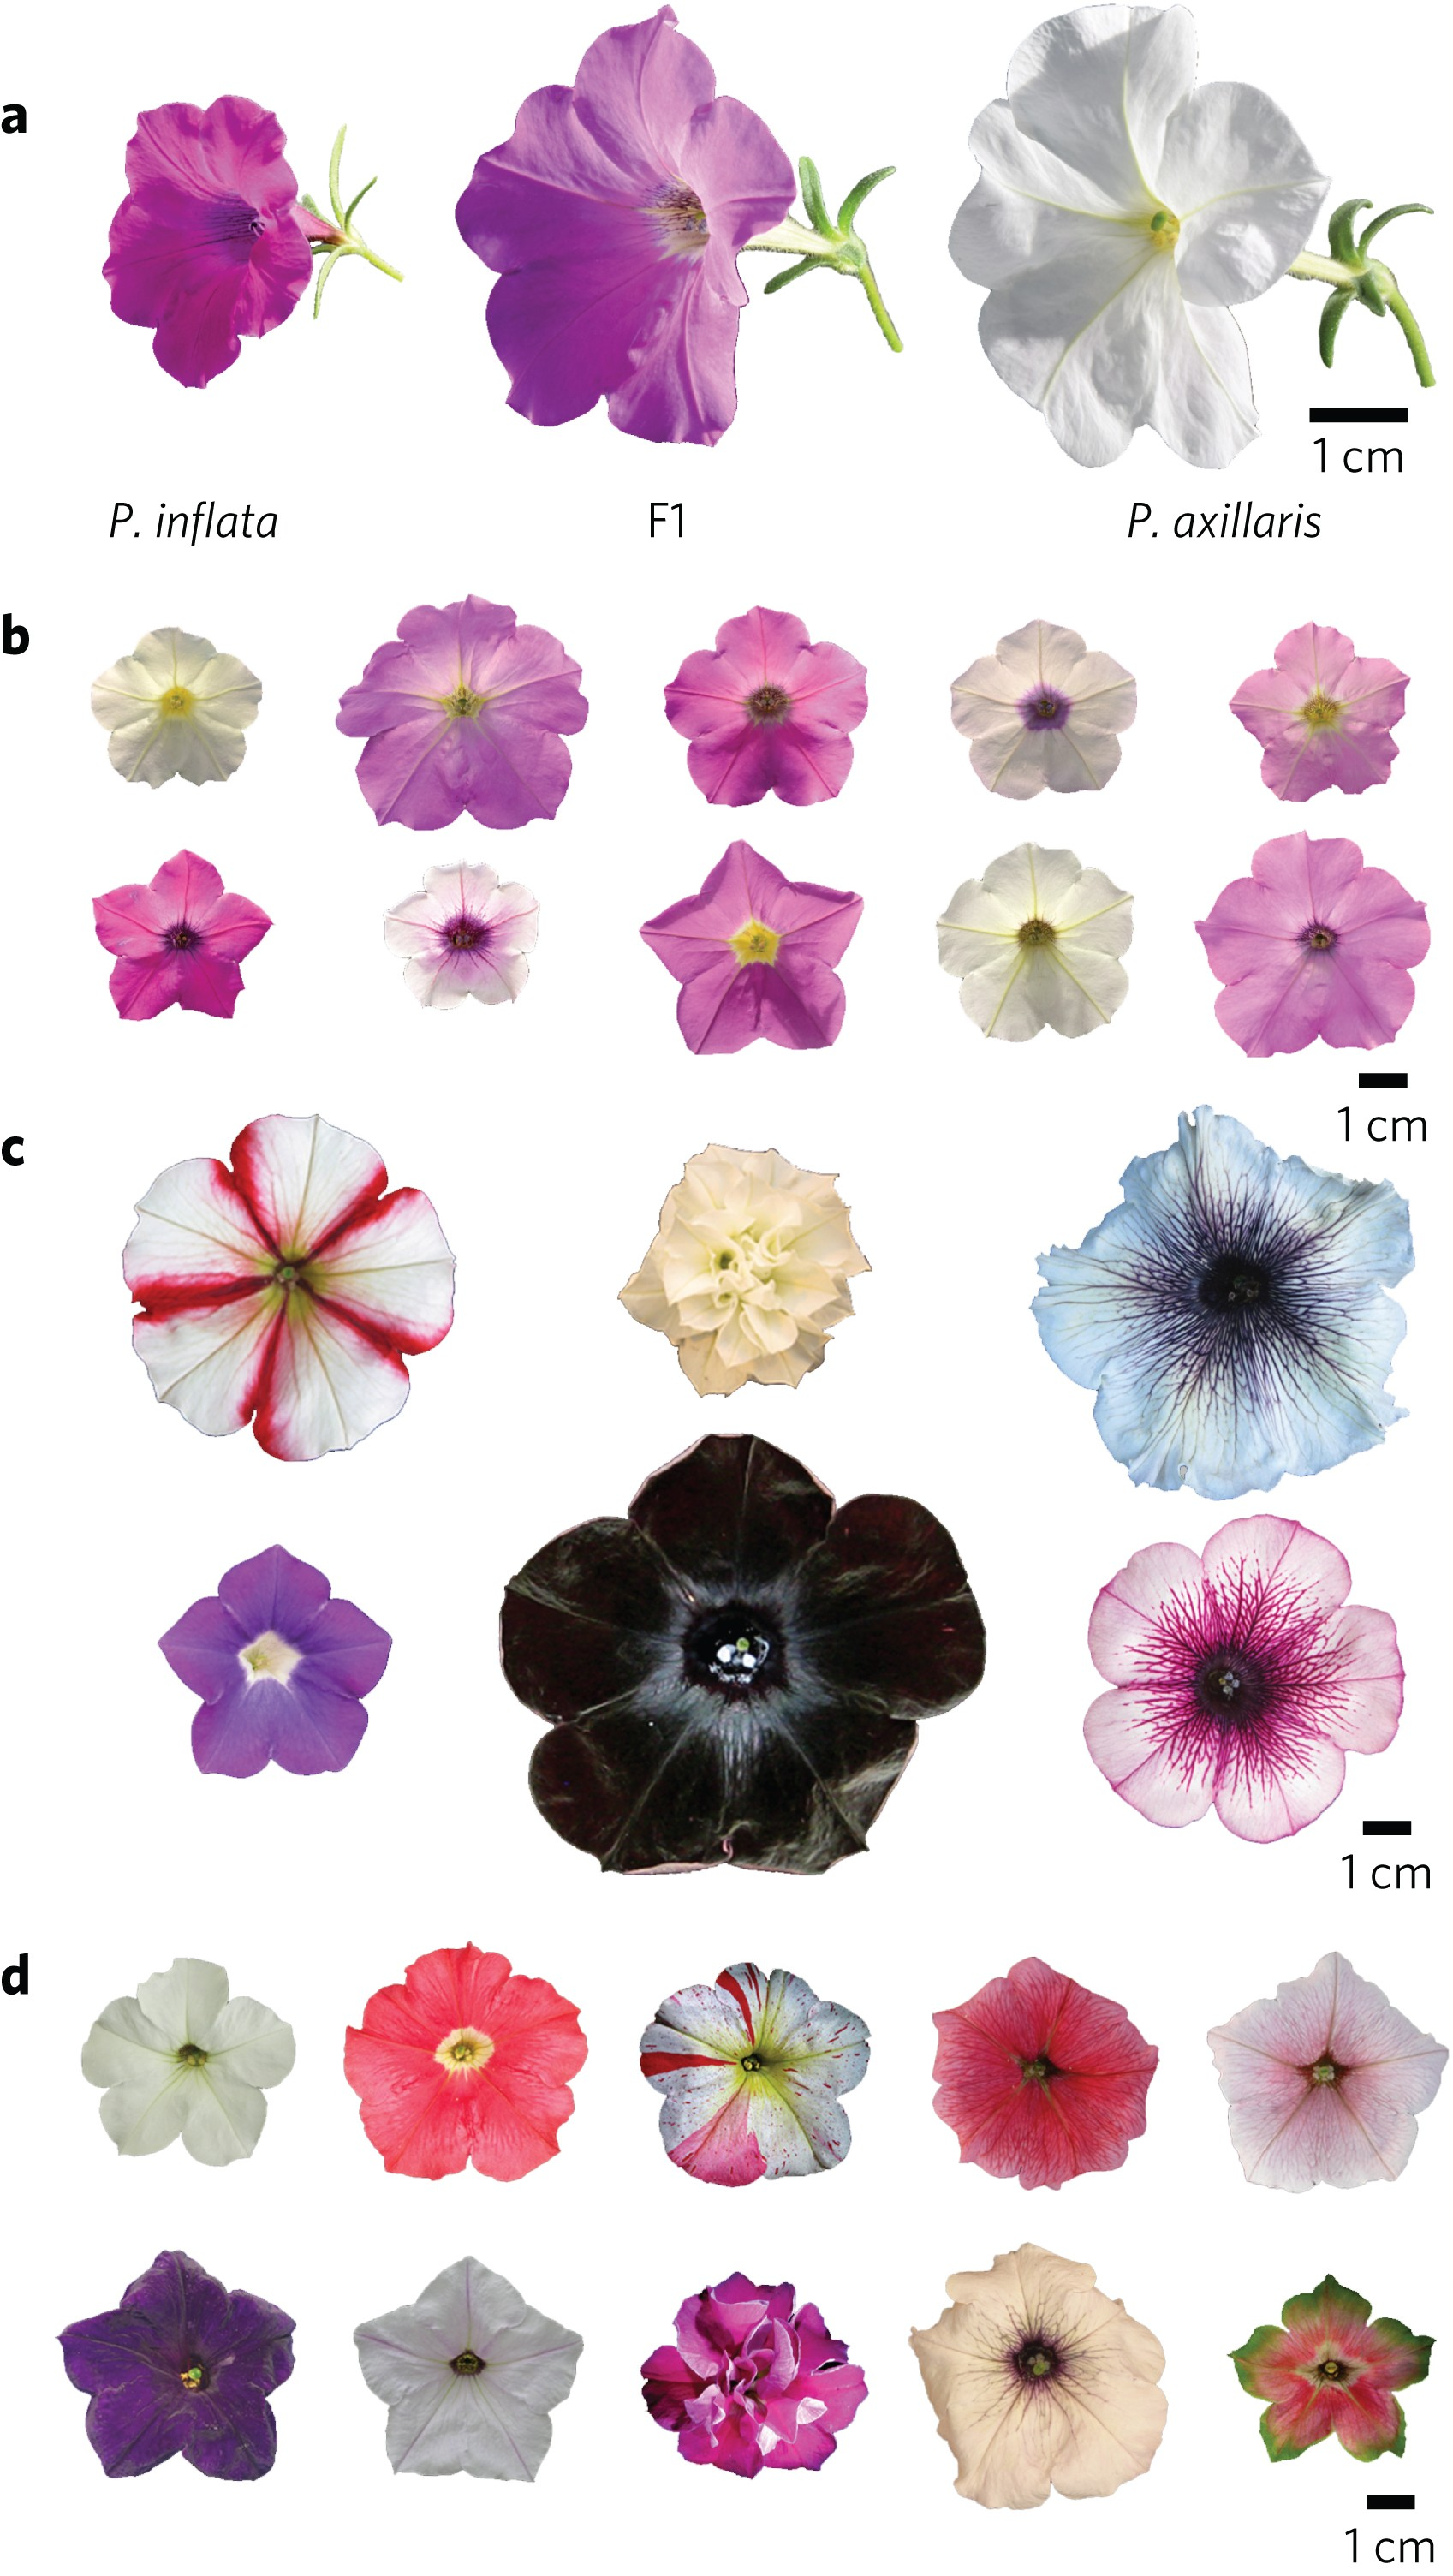 Insight Into The Evolution Of The Solanaceae From The Parental